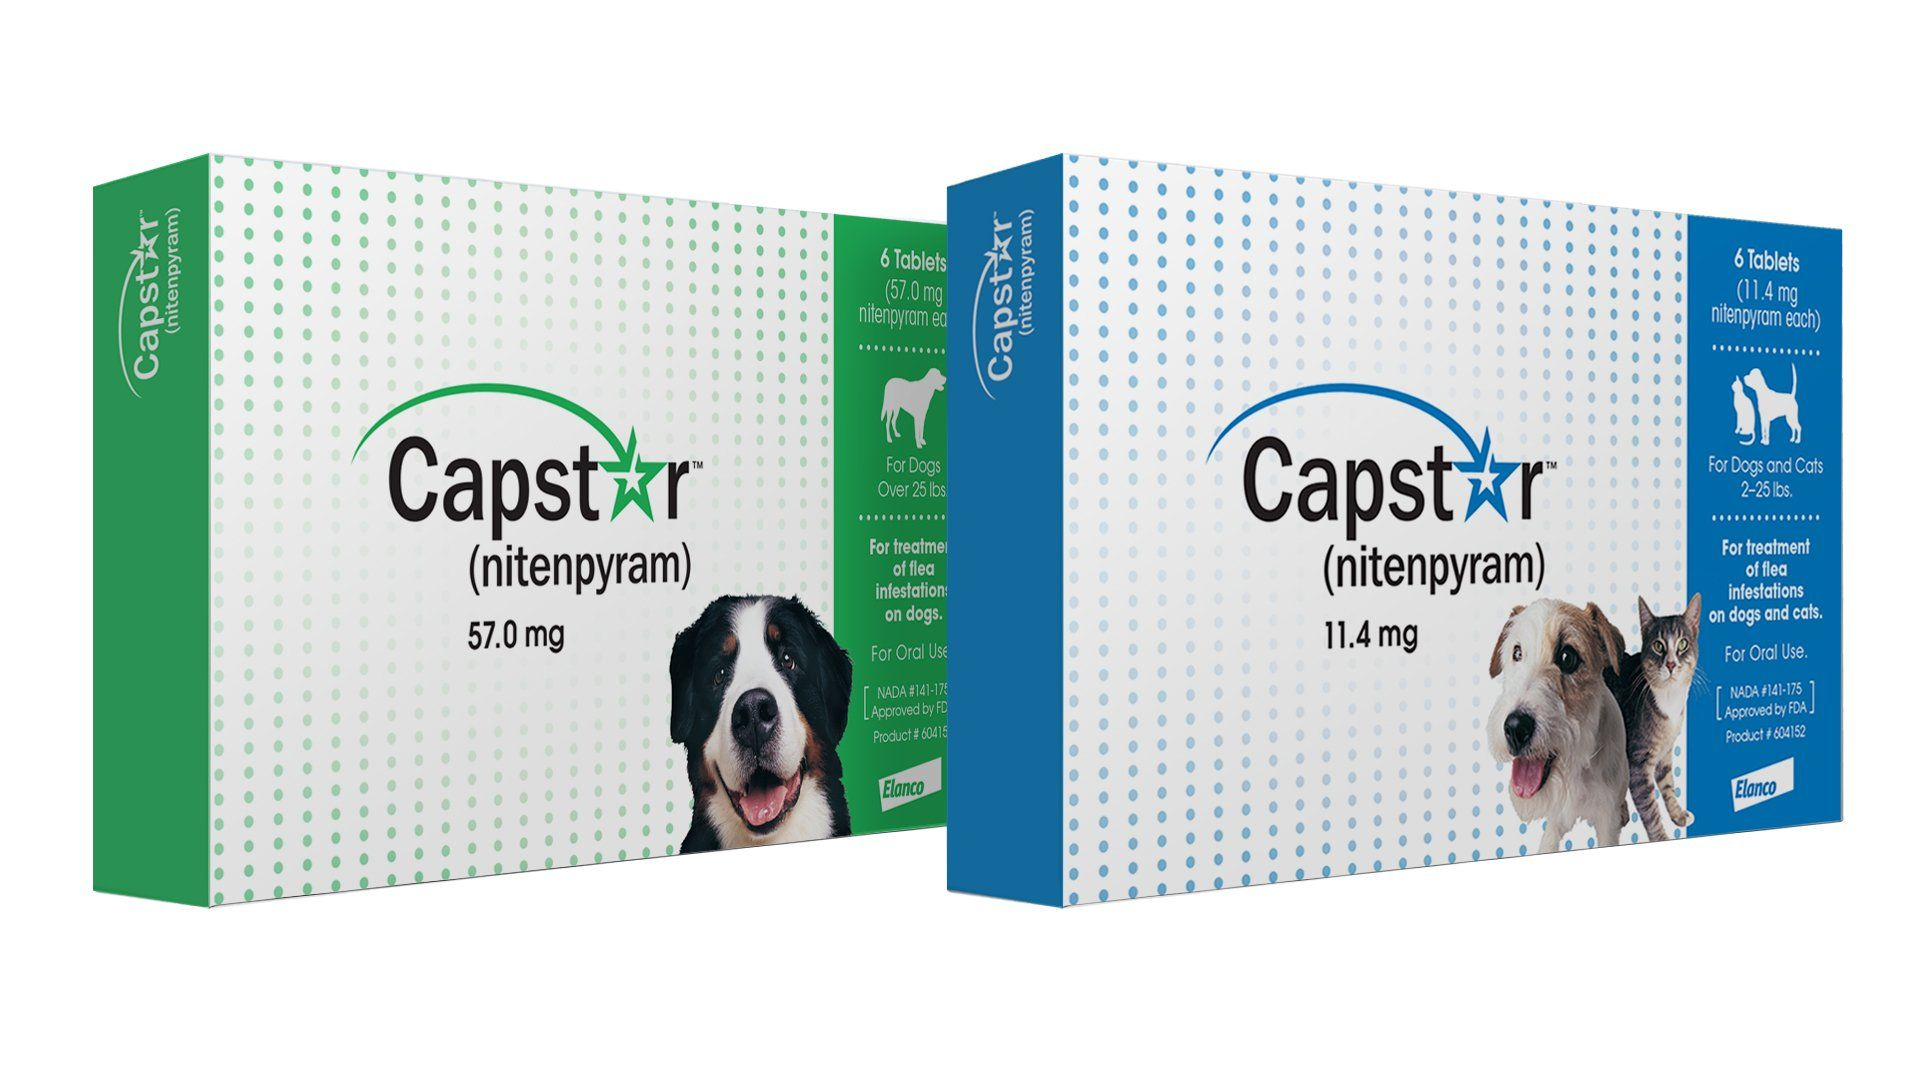 Novartis Capstar Flea Tablets For Dogs And Cats Flea Capstar Novartis Cats With Images Flea Treatment Fleas Dog Cat